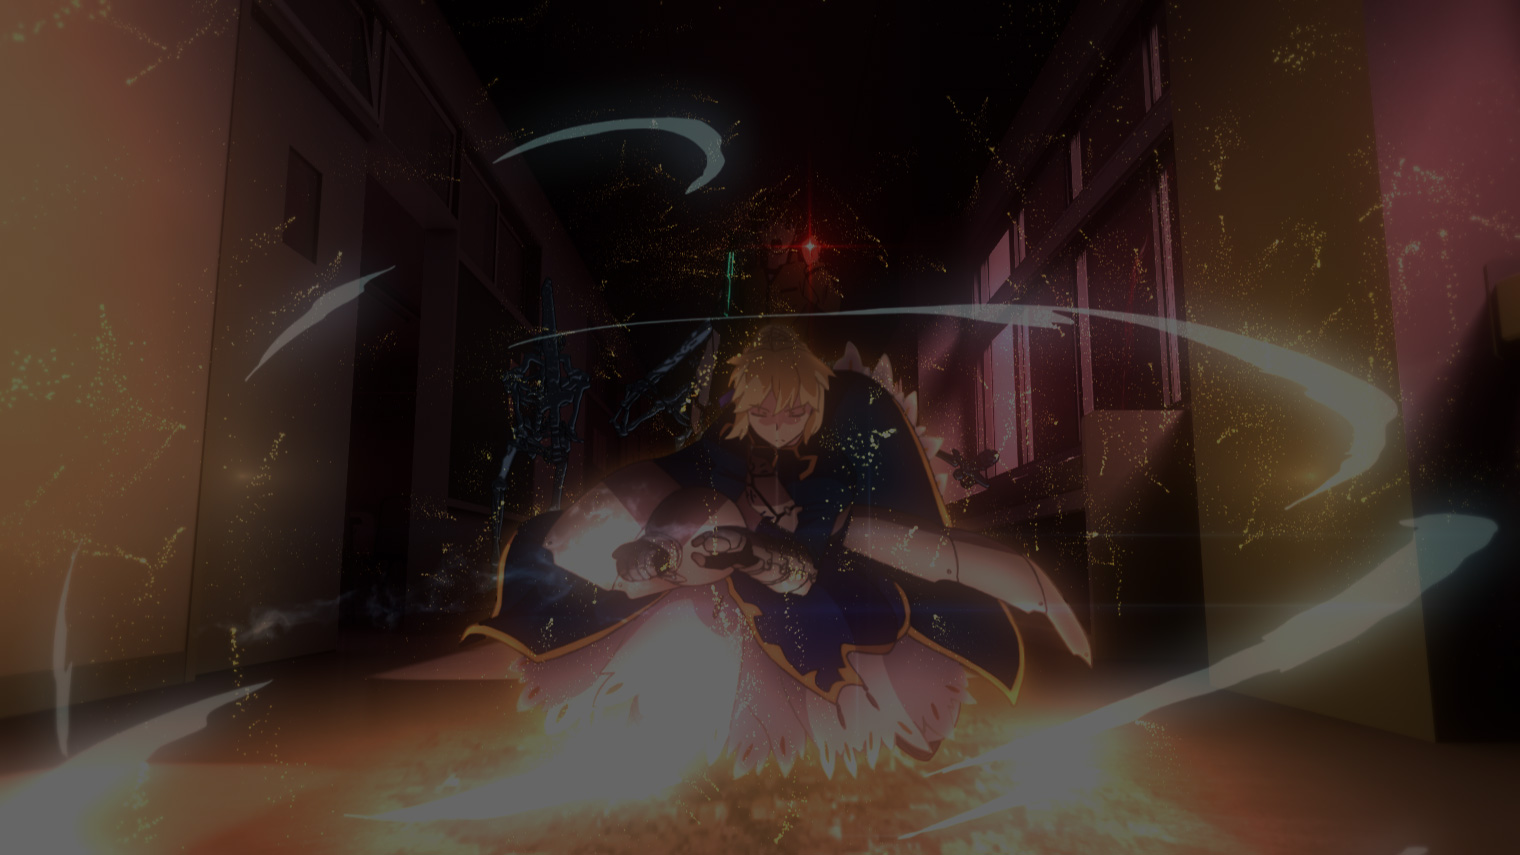 Fate-stay-night-Unlimited-Blade-Works_Haruhichan.com-Broadcast-2